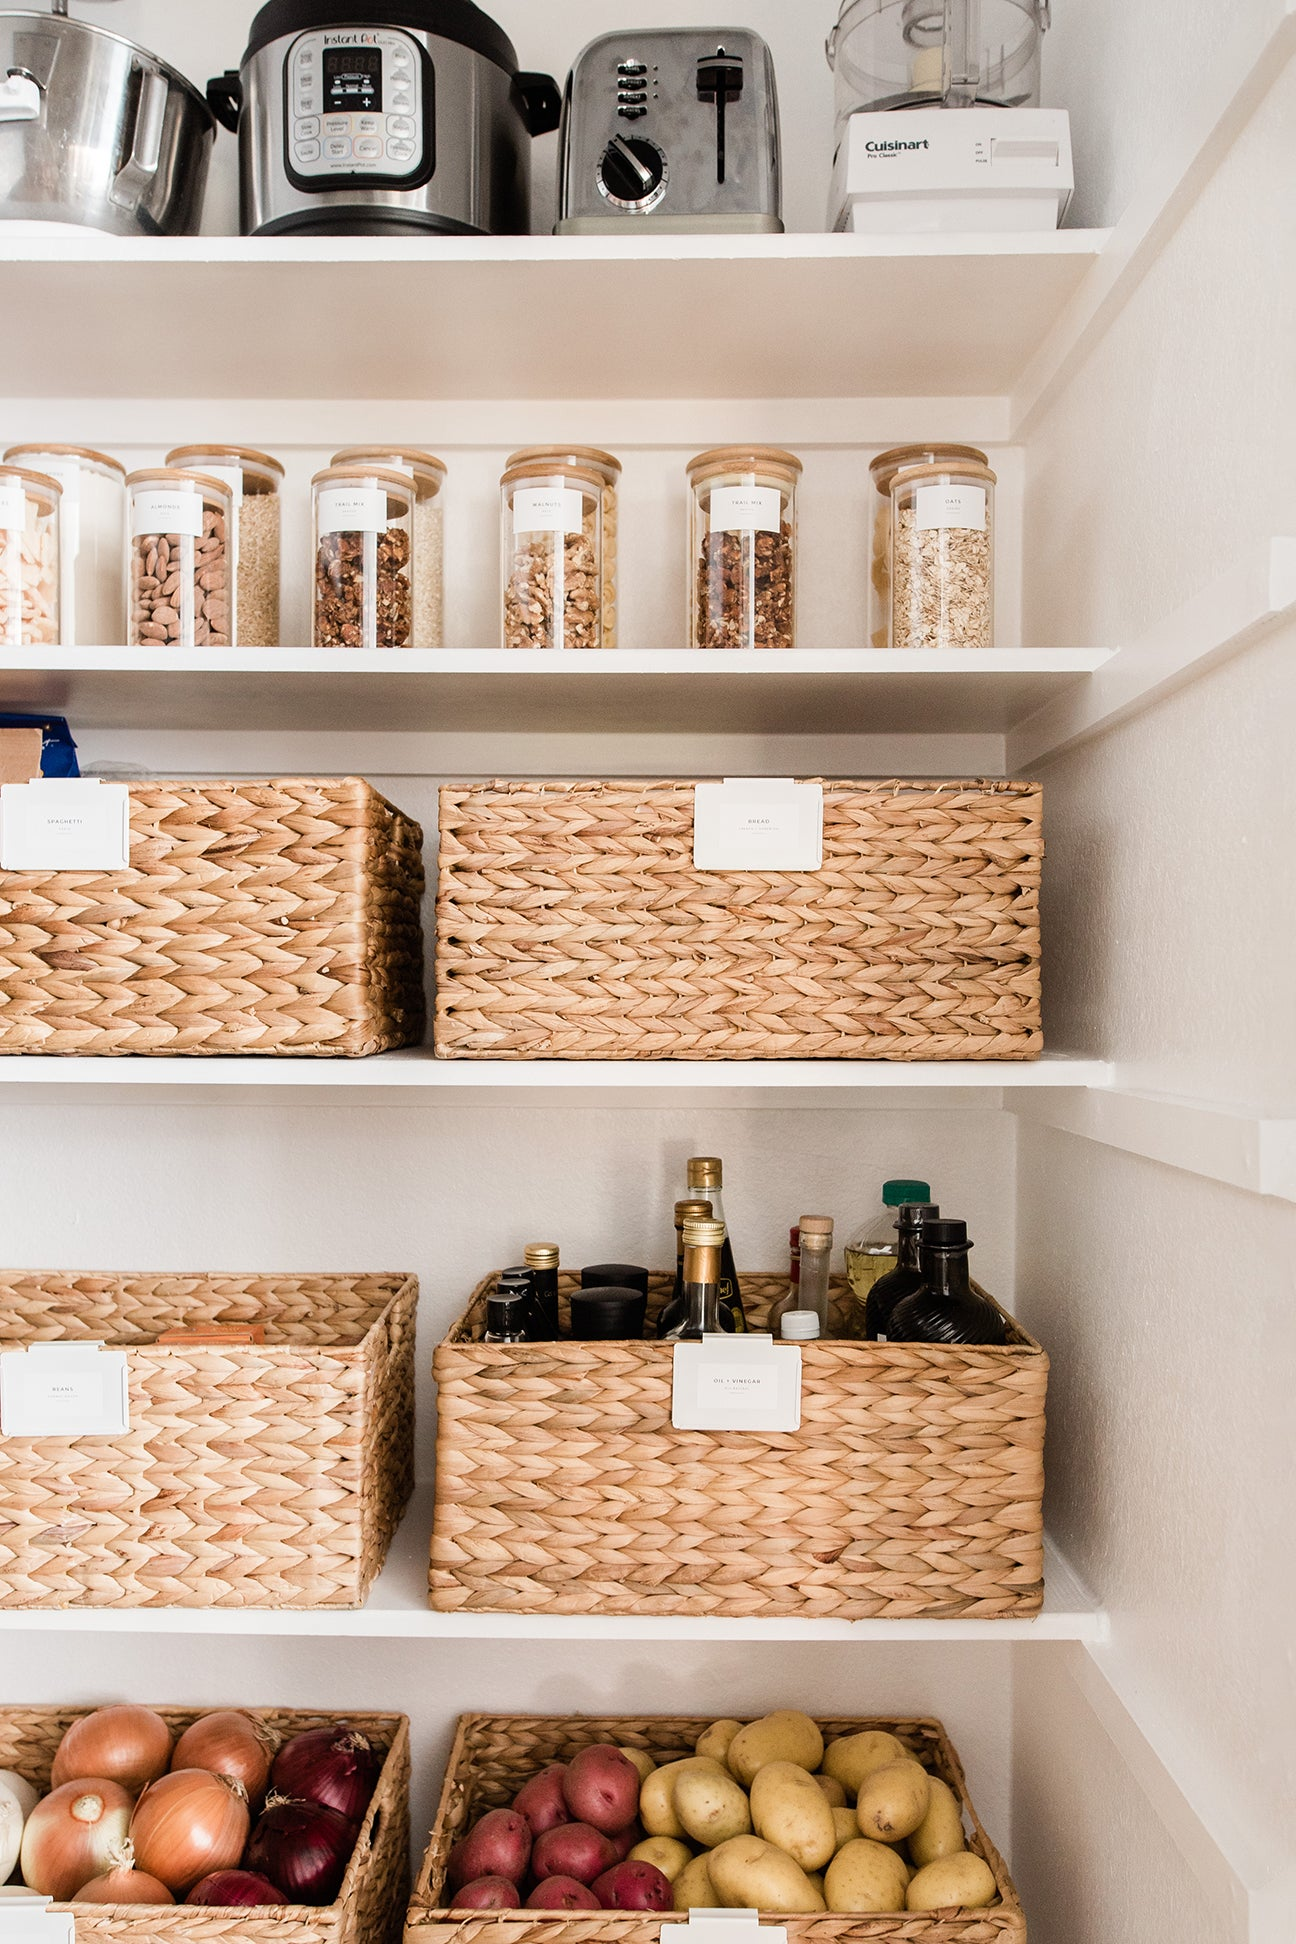 woven baskets in pantry